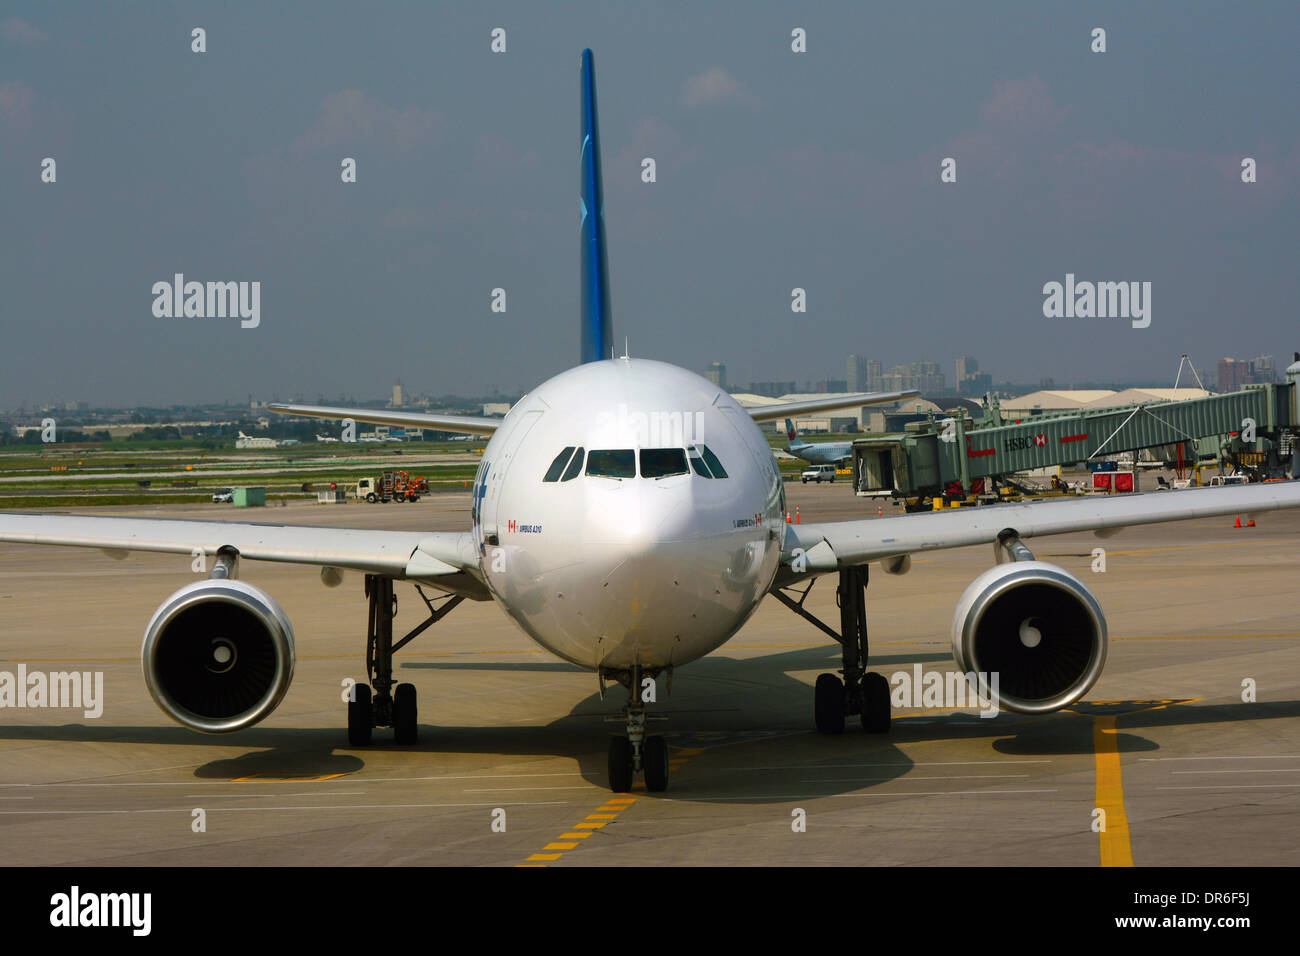 Airbus A310 front view - Stock Image